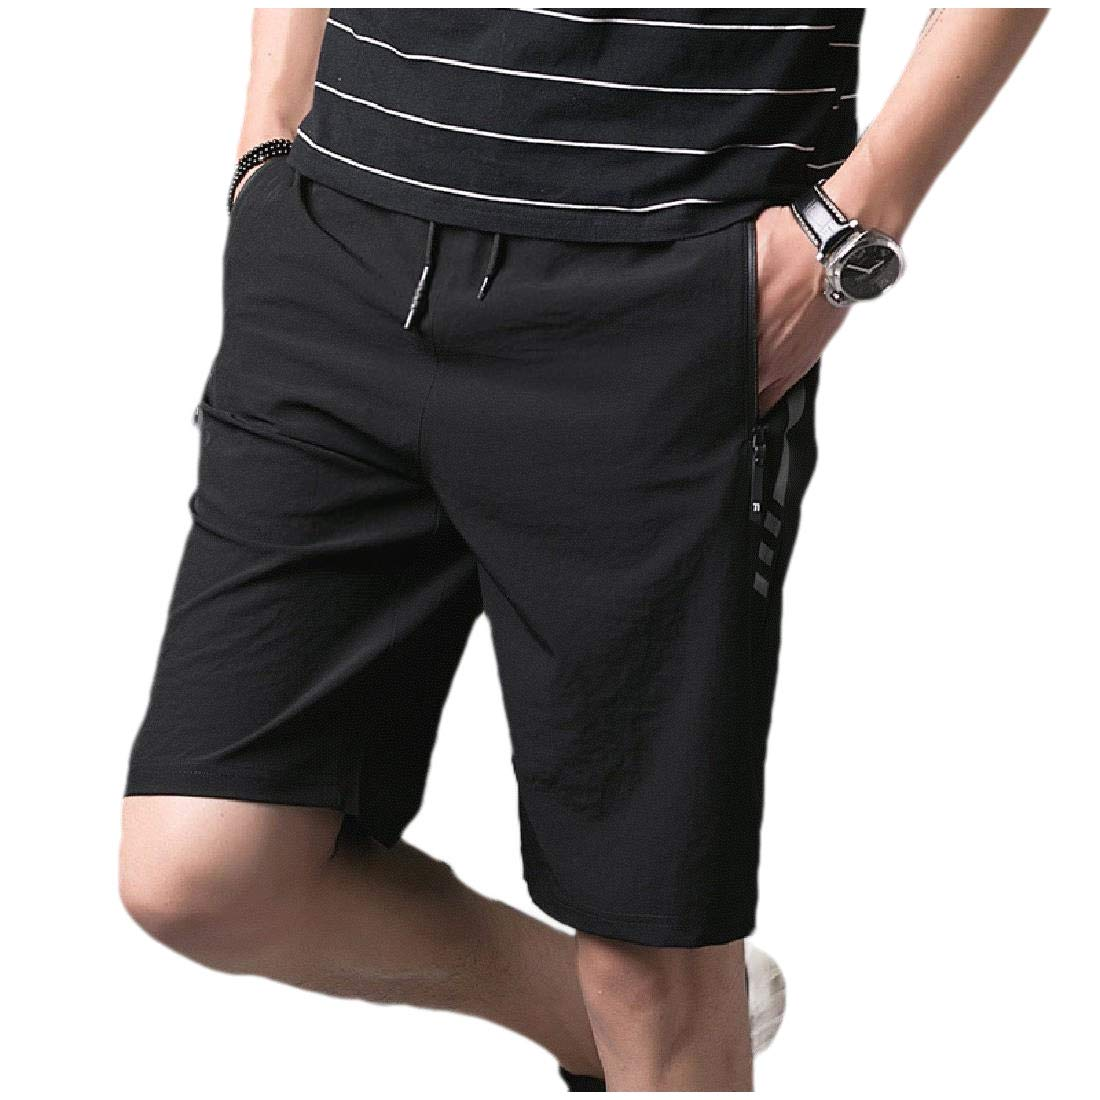 Highisa Men Sports Drawstring Stretchable Quick Drying Half Beach Board Short